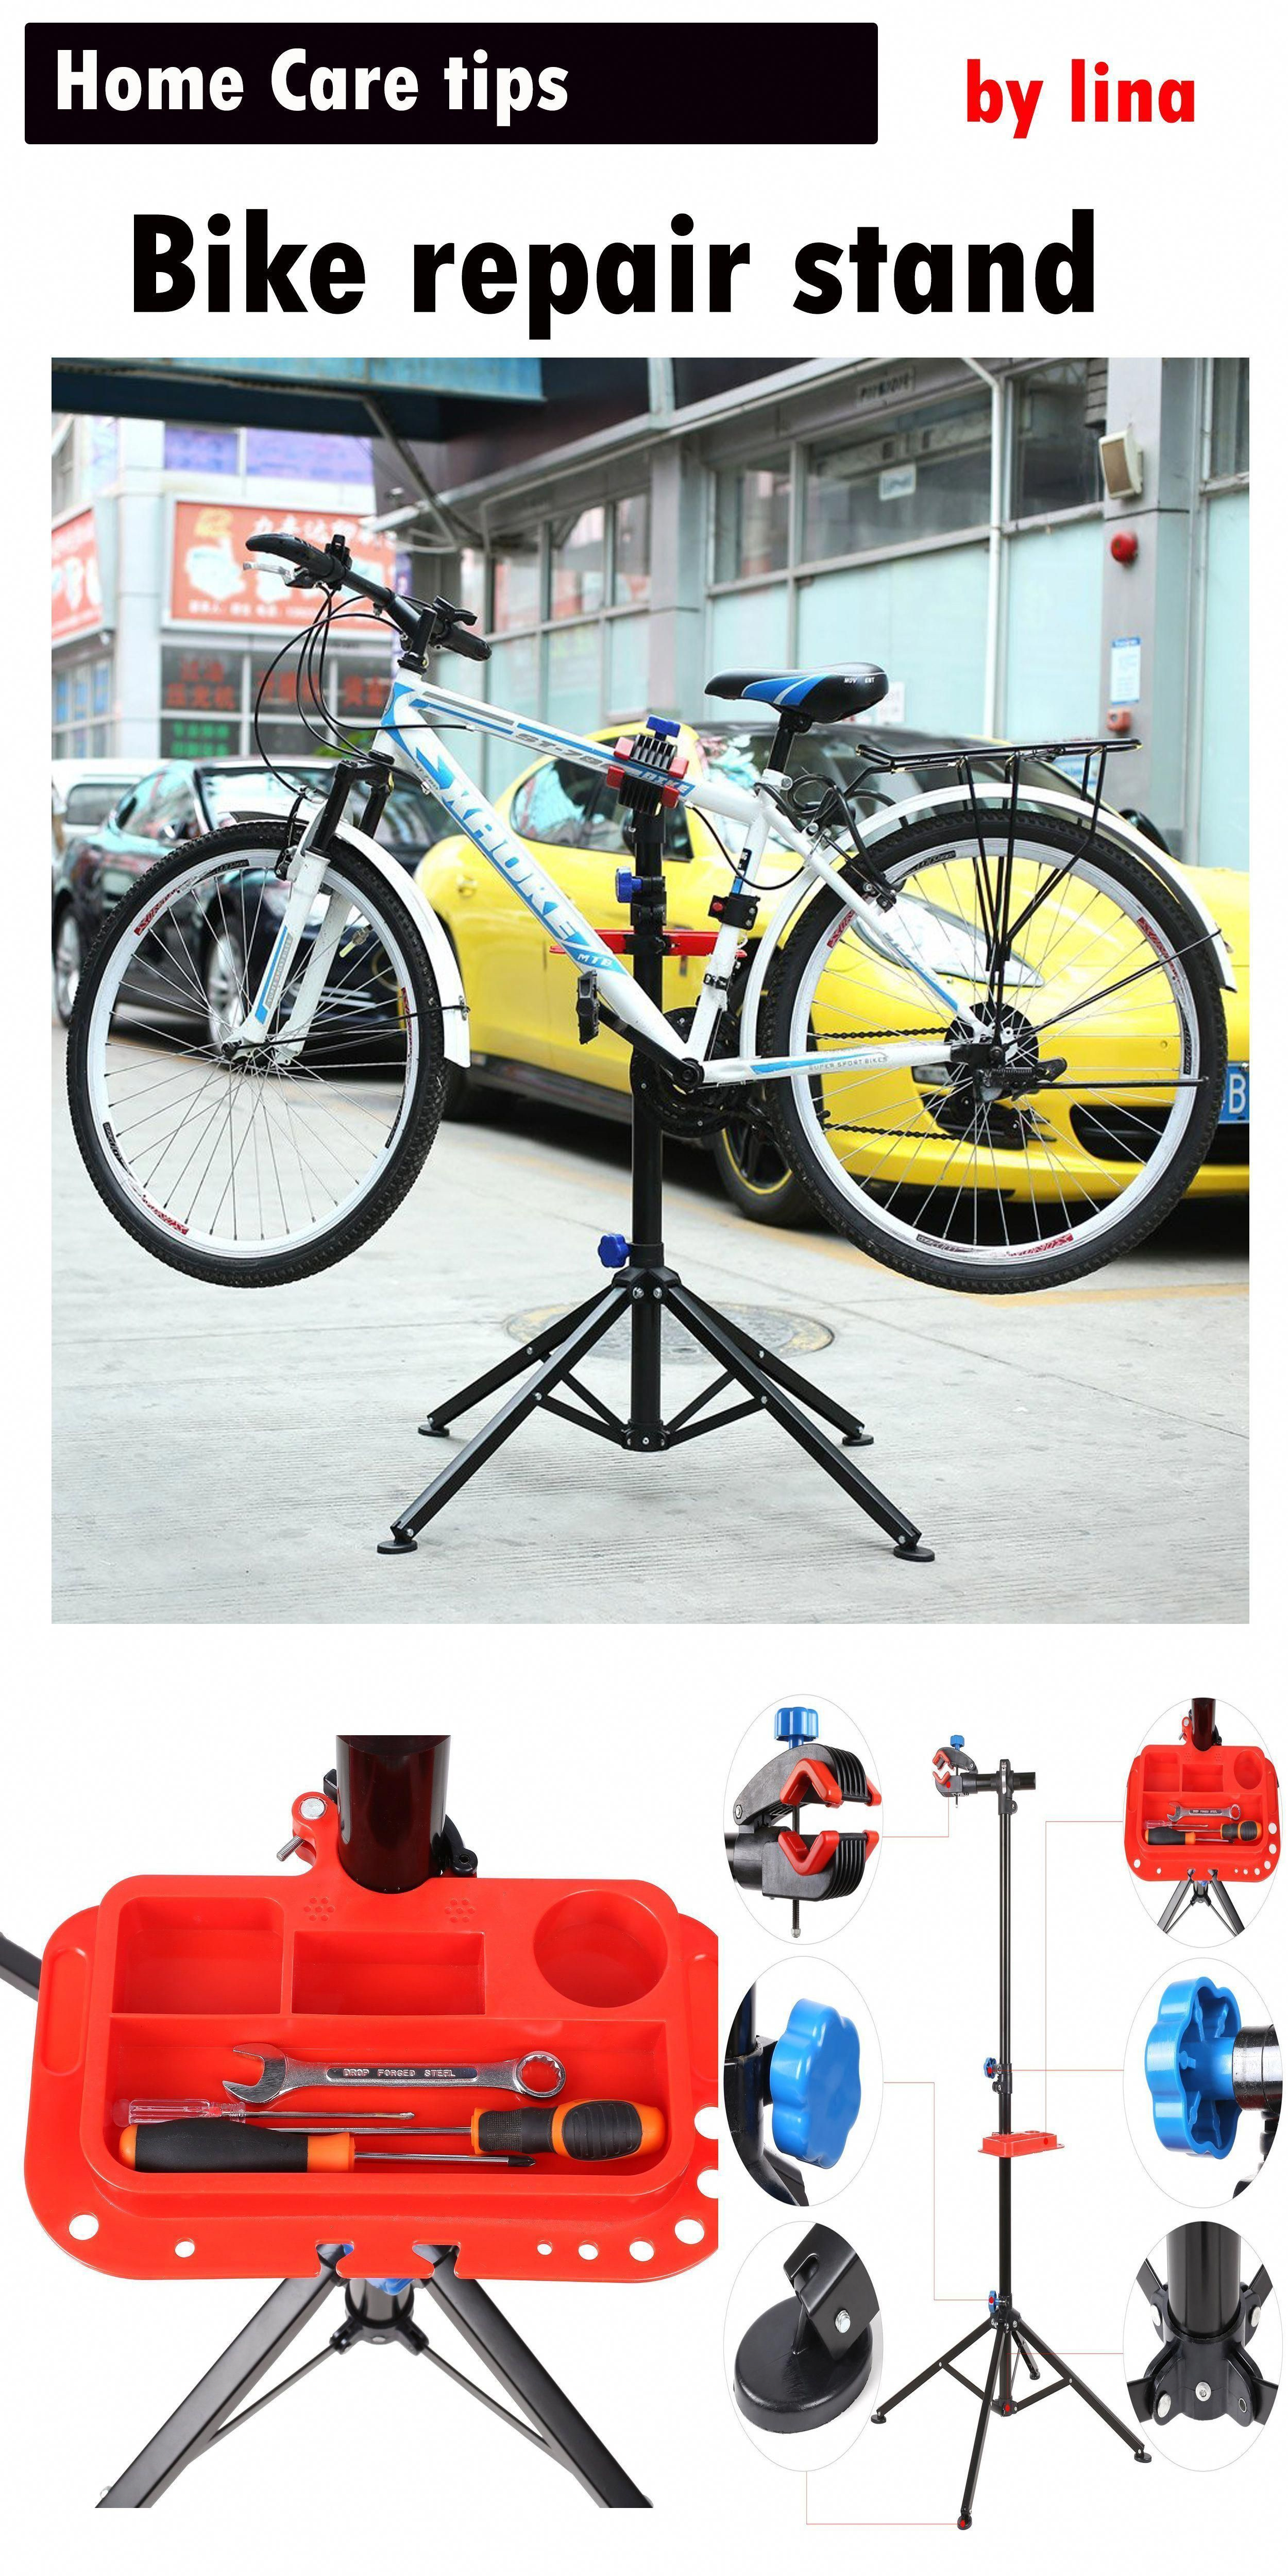 f95dc8e2360 MVPOWER Pro Mechanic Bike Repair Stand Adjustable Height Bicycle  Maintenance Rack Workstand With Tool Tray